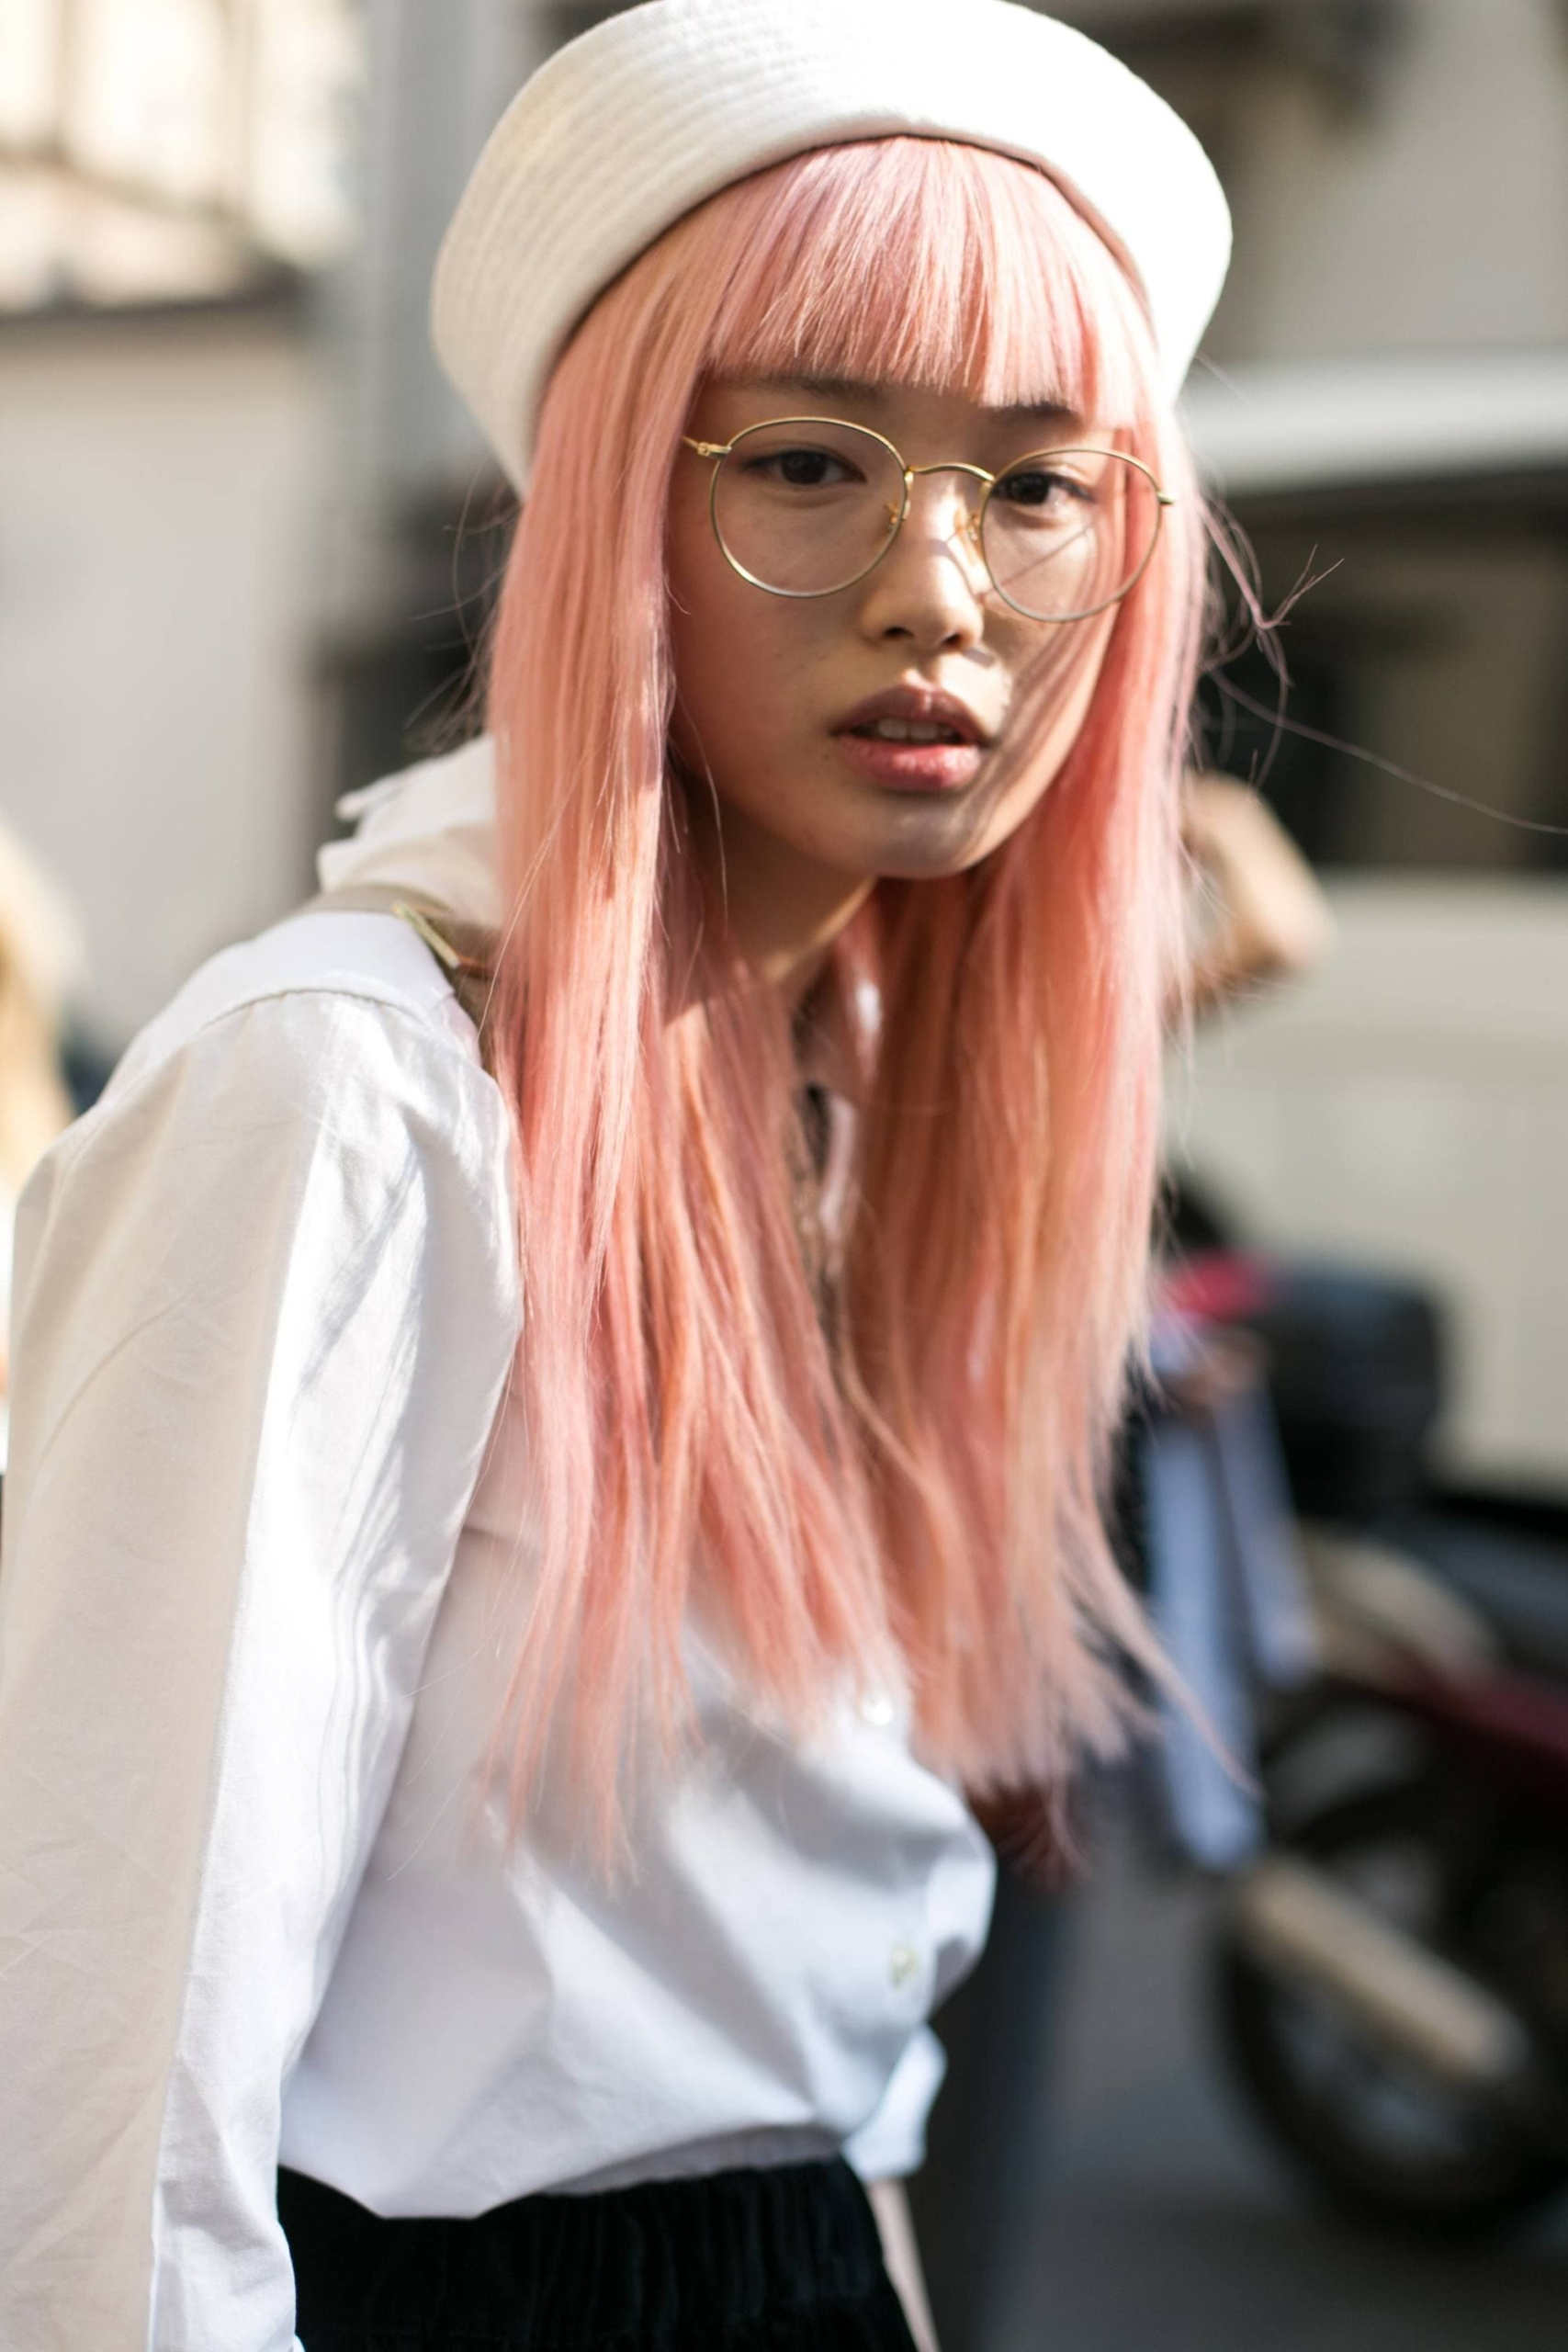 Peach hair color is definitely one of the boldest